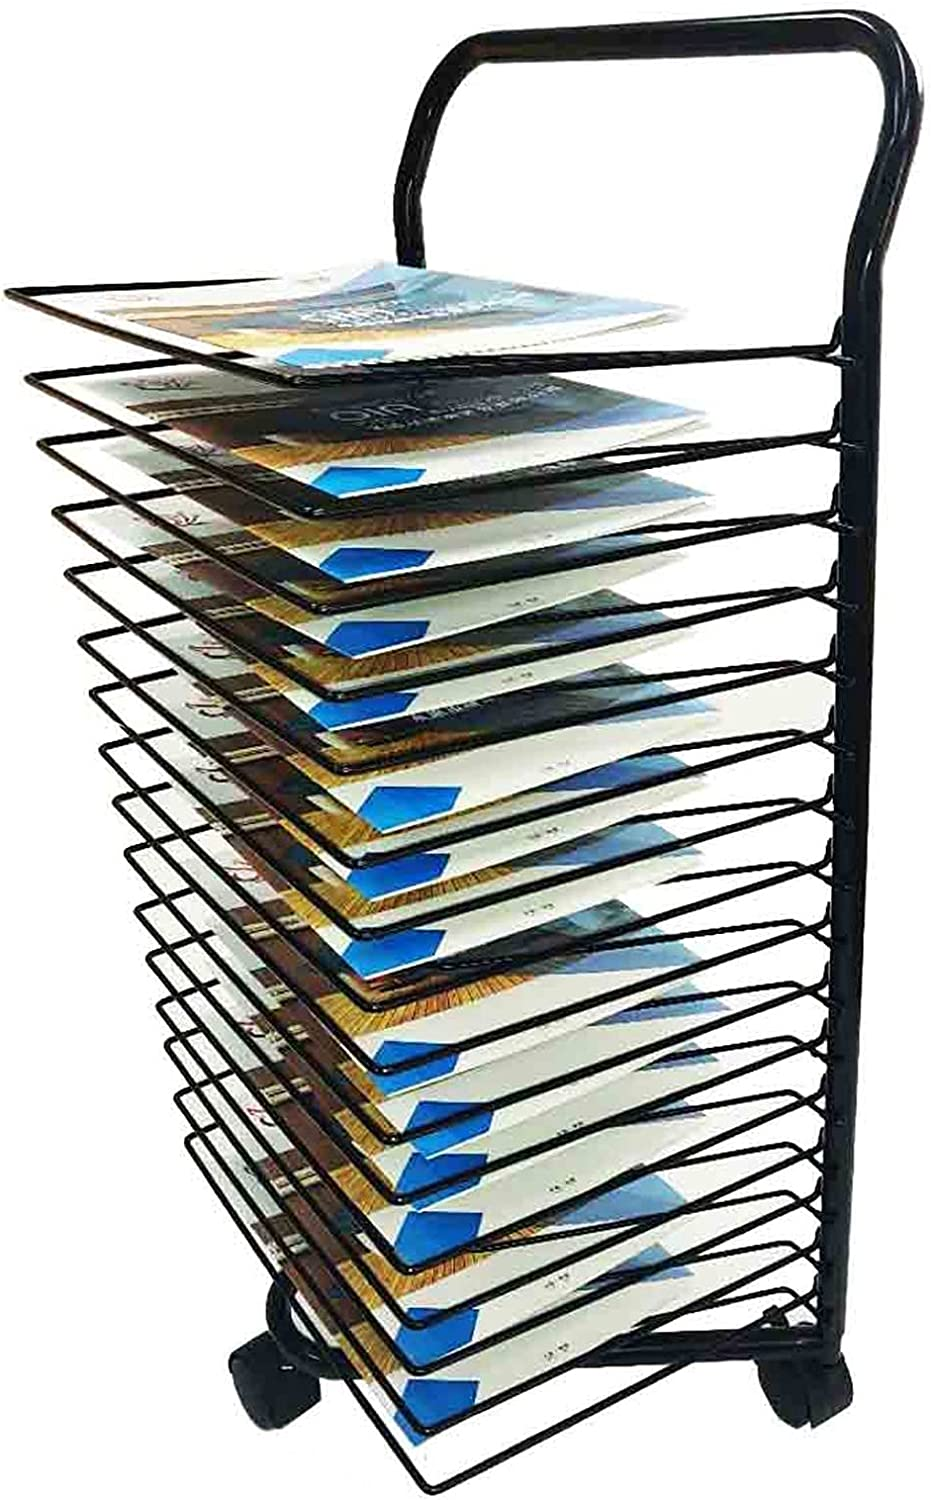 Import YSCMX Drying Rack 2021 autumn and winter new 15-Shelf D Mobile with Classrooms